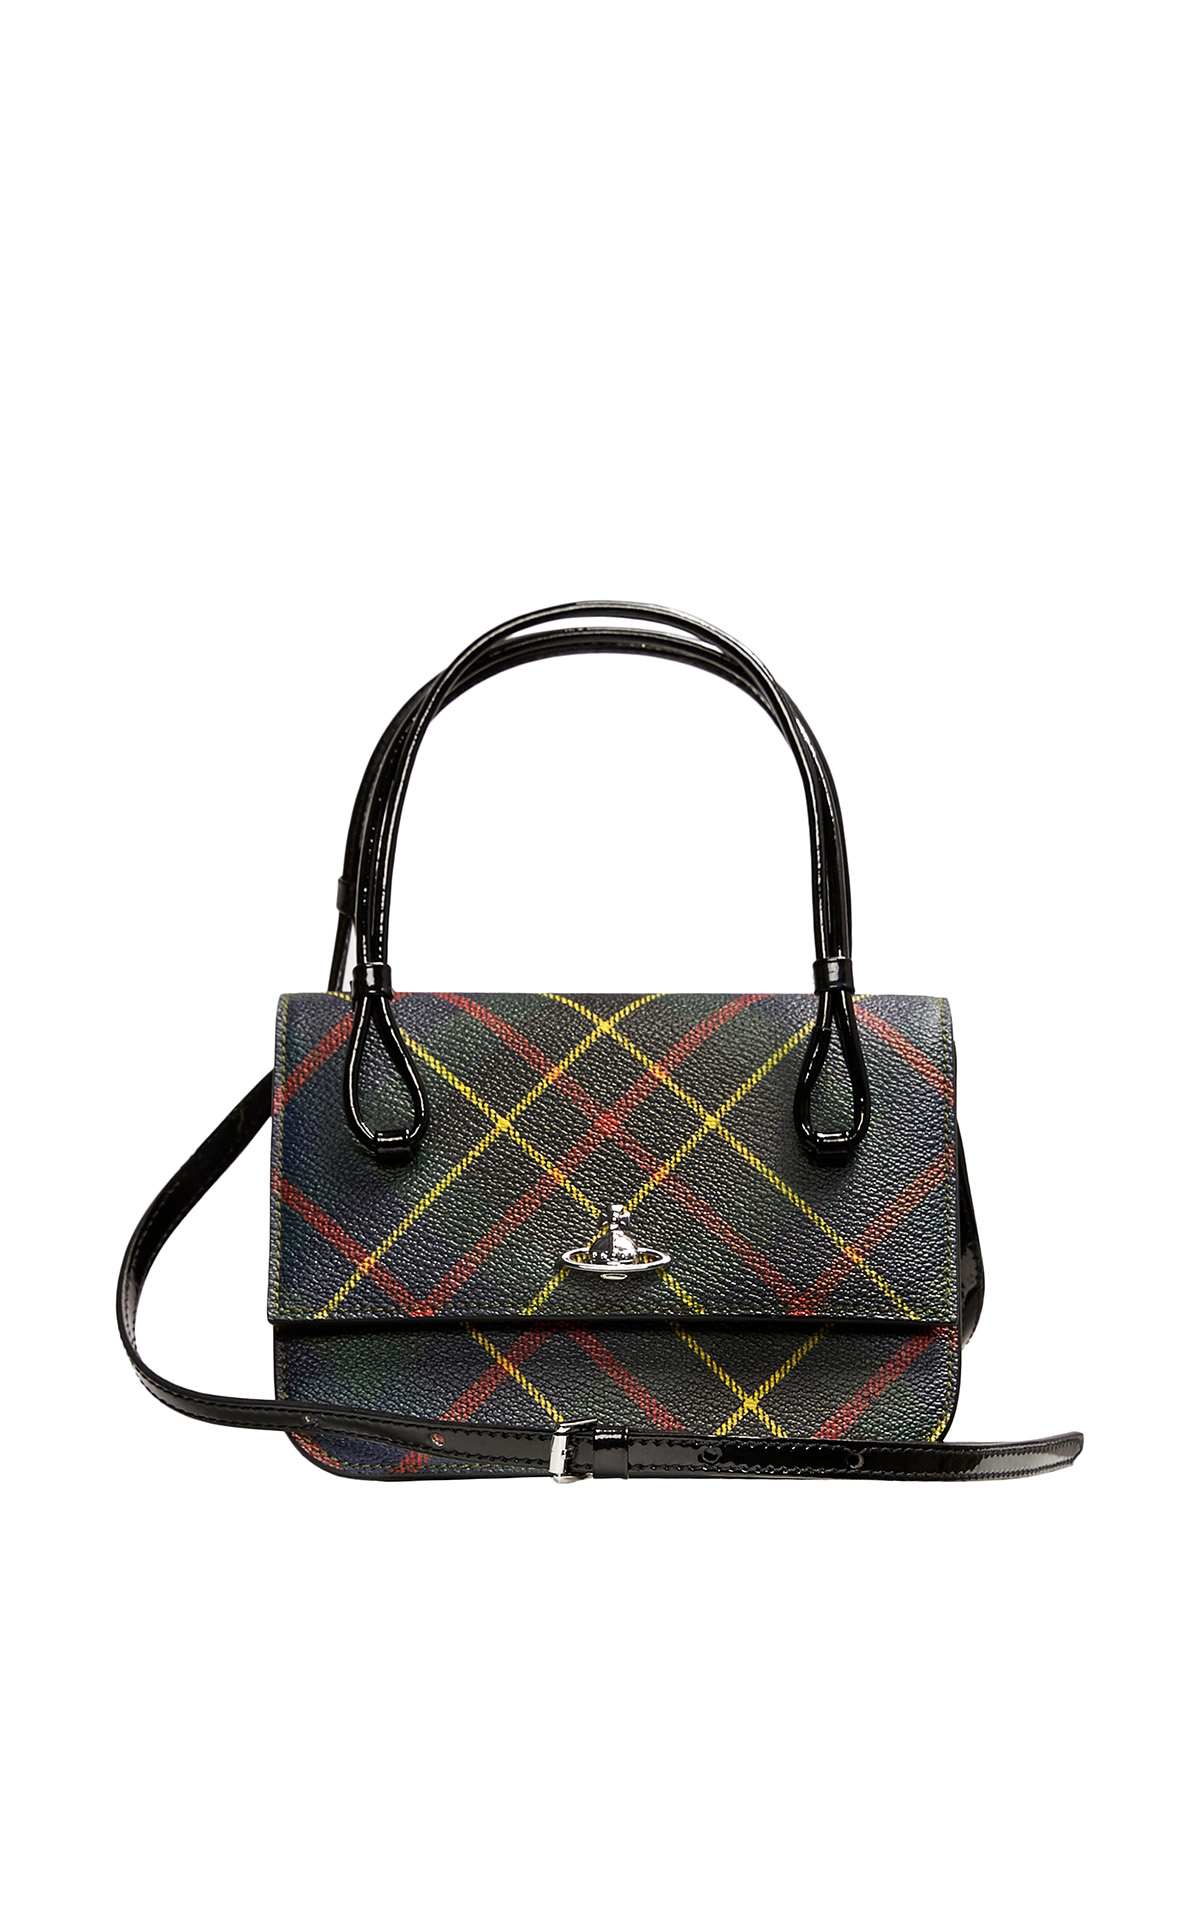 Vivienne Westwood Small handbag from Bicester Village